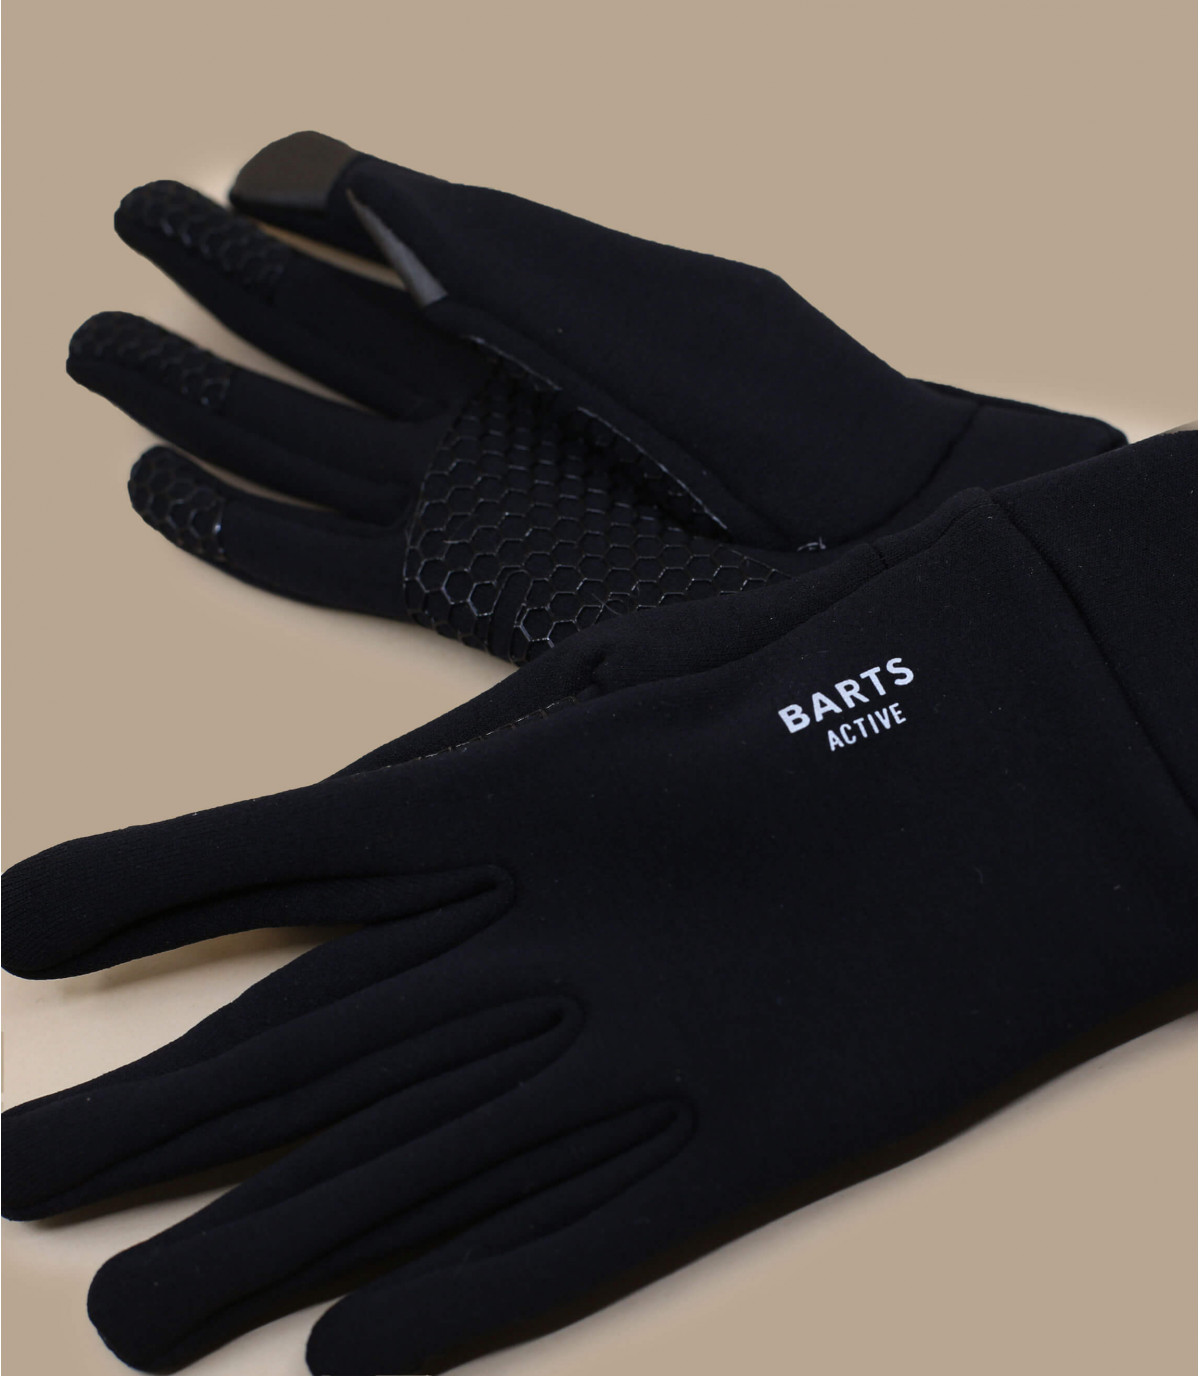 Détails Fine knitted touch gloves black - image 3